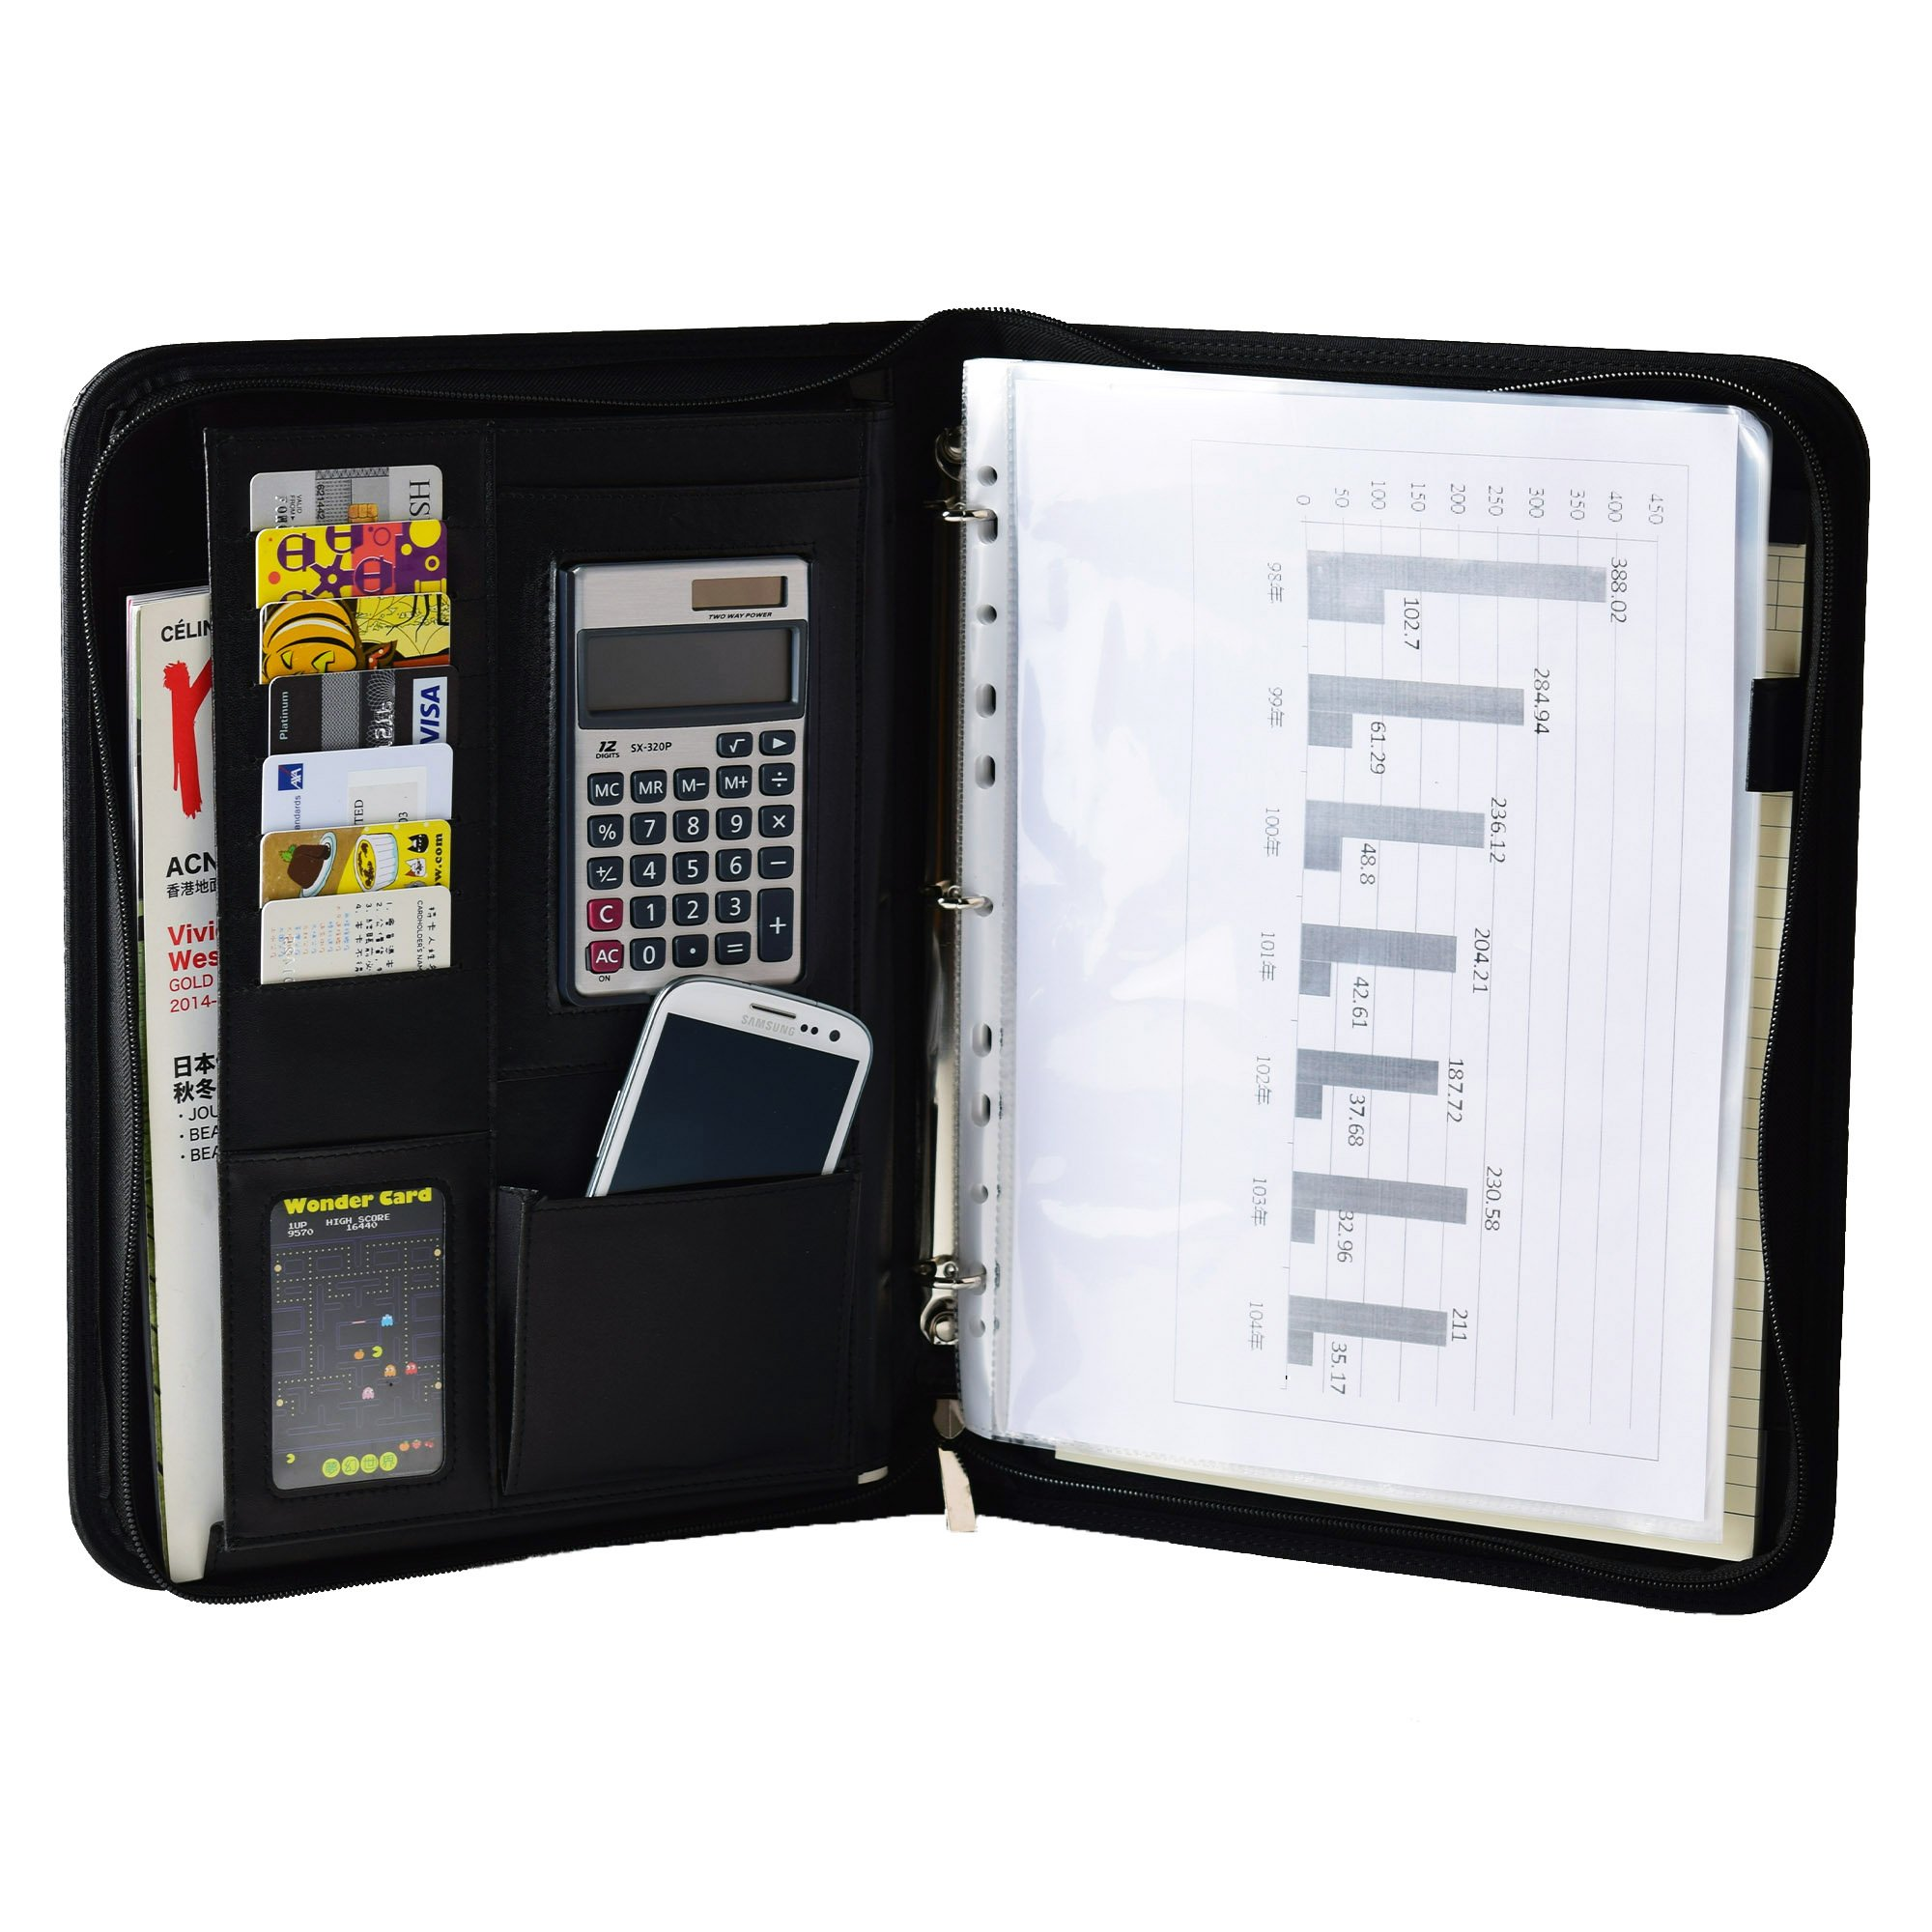 Black Zippered PU Leather 3 Ring Binder iPad Padfolio Organizer Documents Card Holder with 12-bit Portable Solar Calculator A4 Notepad